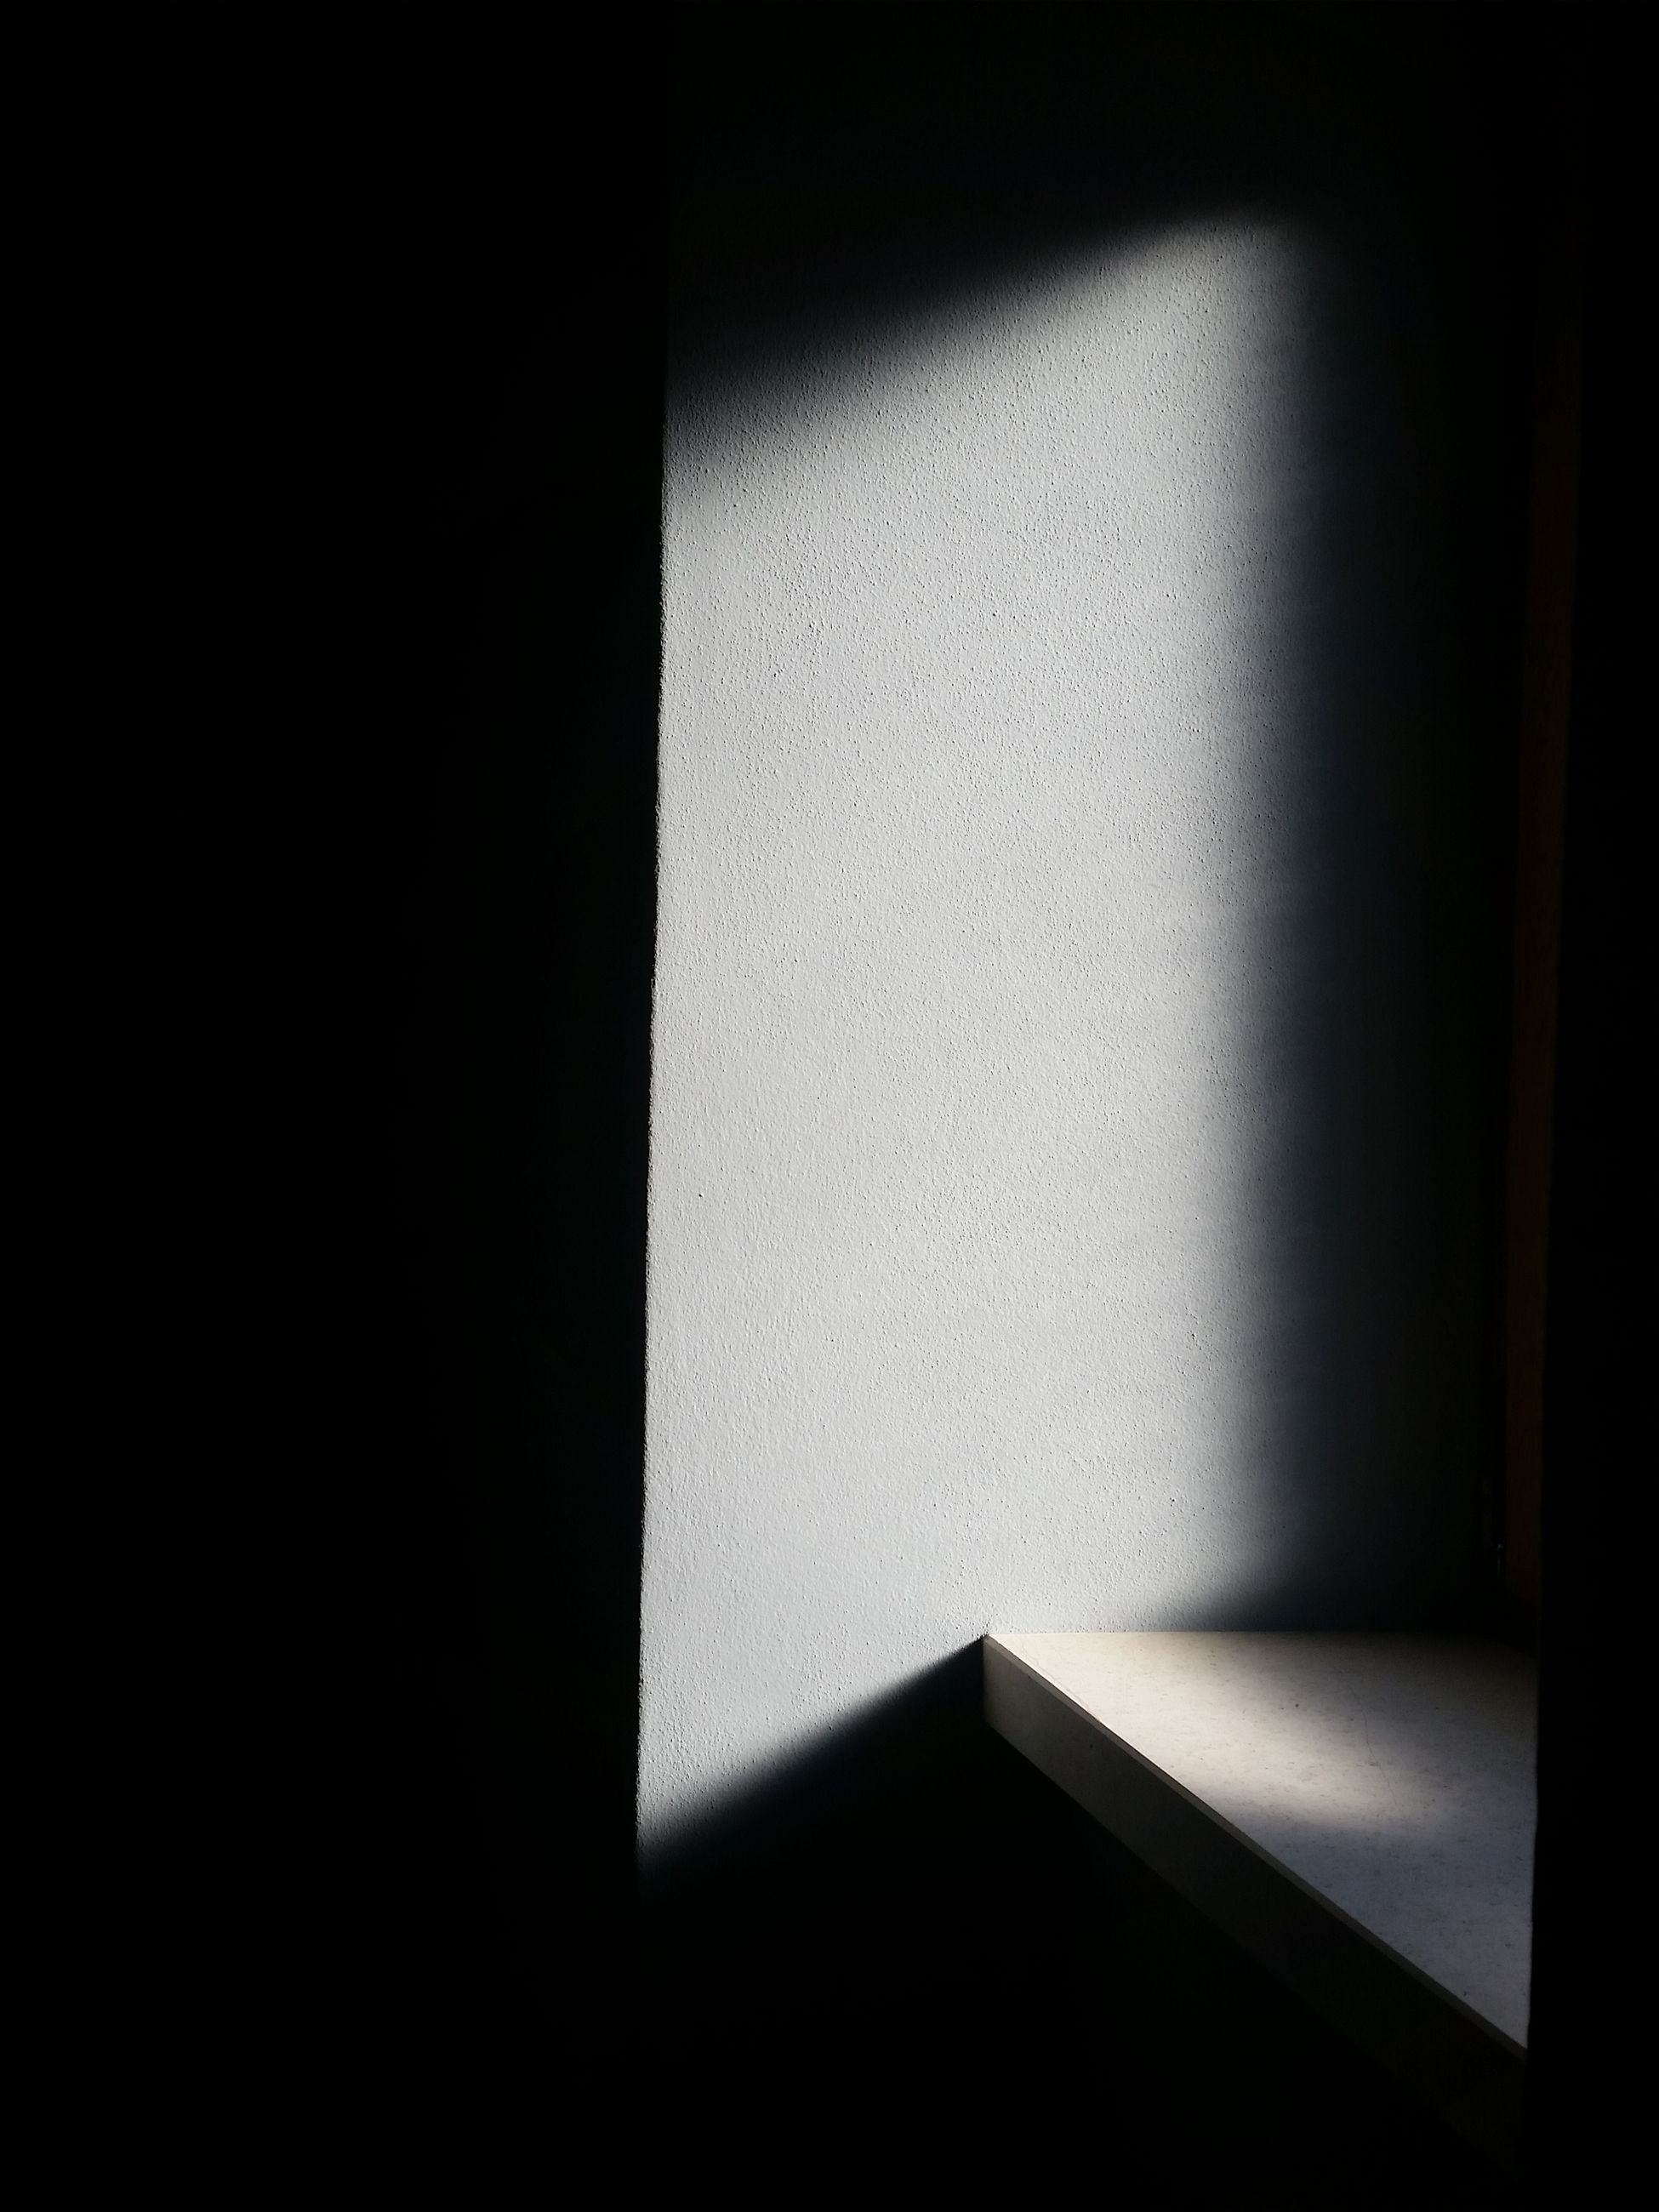 copy space, shadow, indoors, no people, sunlight, dark, falling, close-up, pattern, wall - building feature, architecture, shape, paper, geometric shape, nature, day, design, studio shot, absence, built structure, black background